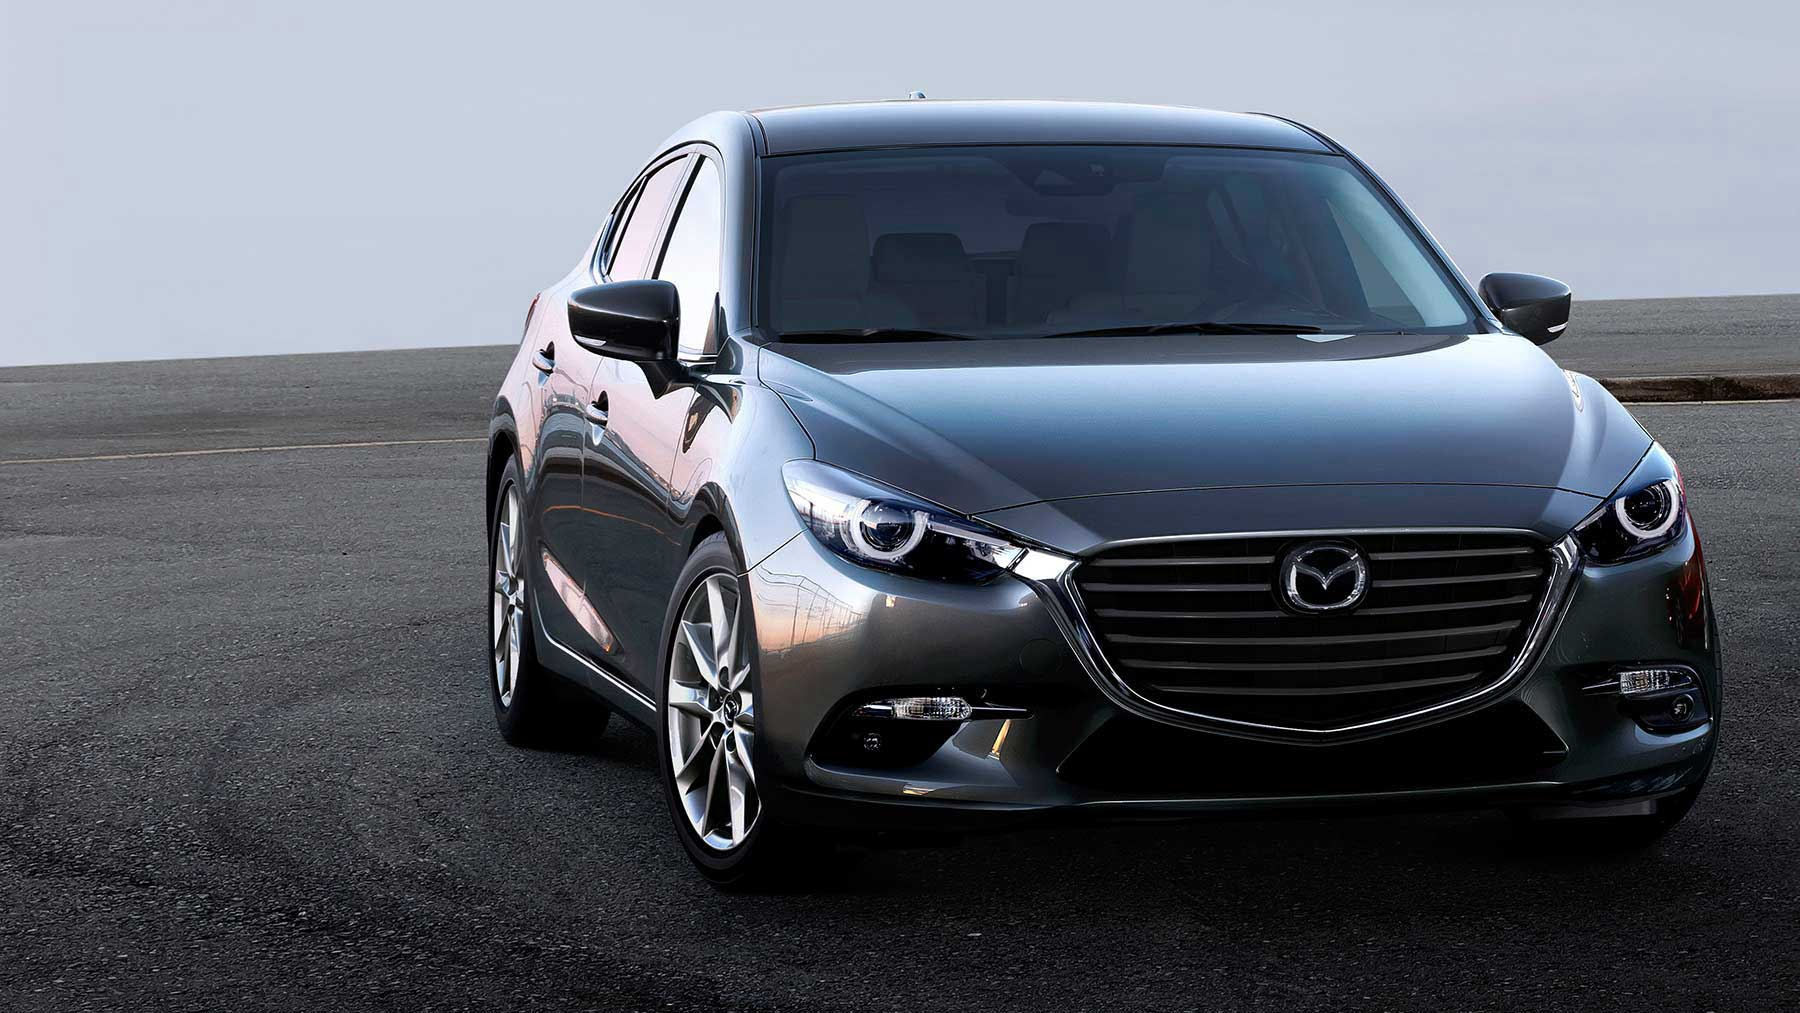 mazda irvine york en guide cx display car articles on new in the